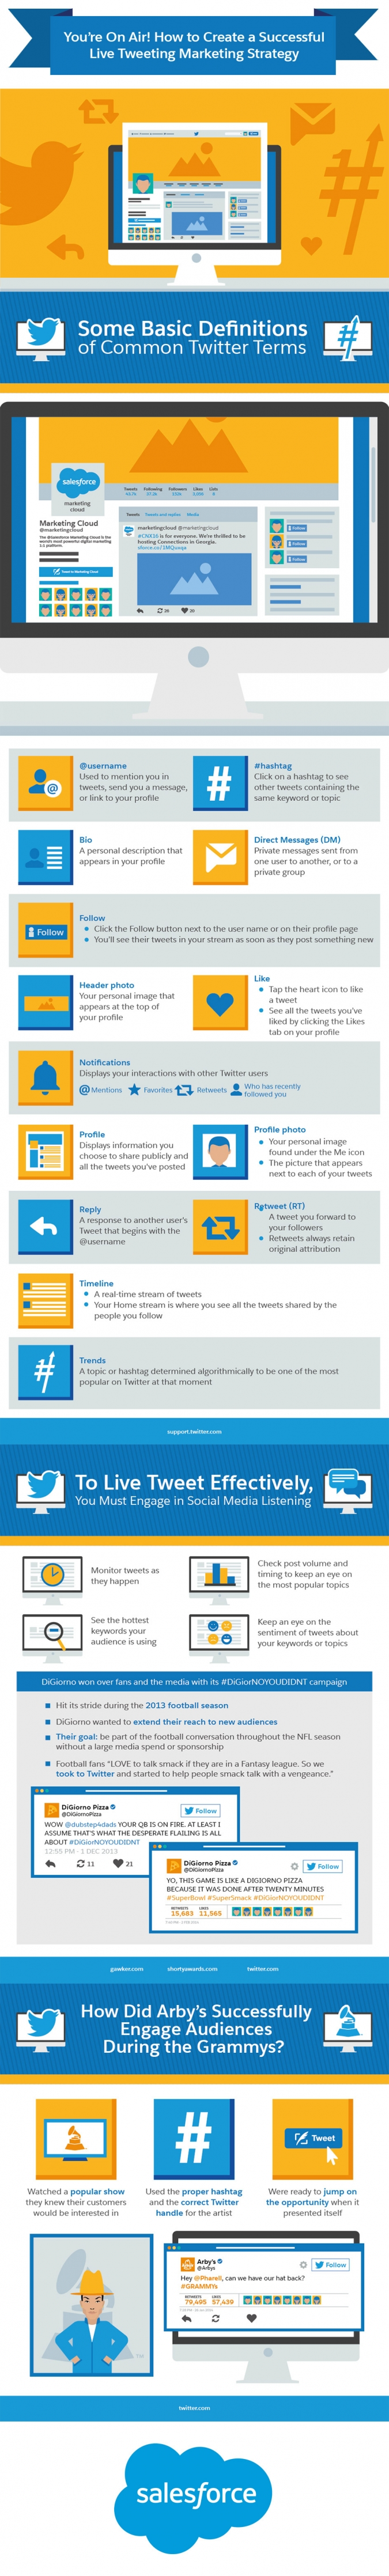 Basic Twitter Marketing – Erfolgreiche Social Media Strategie mit Live Tweets [Infografik]